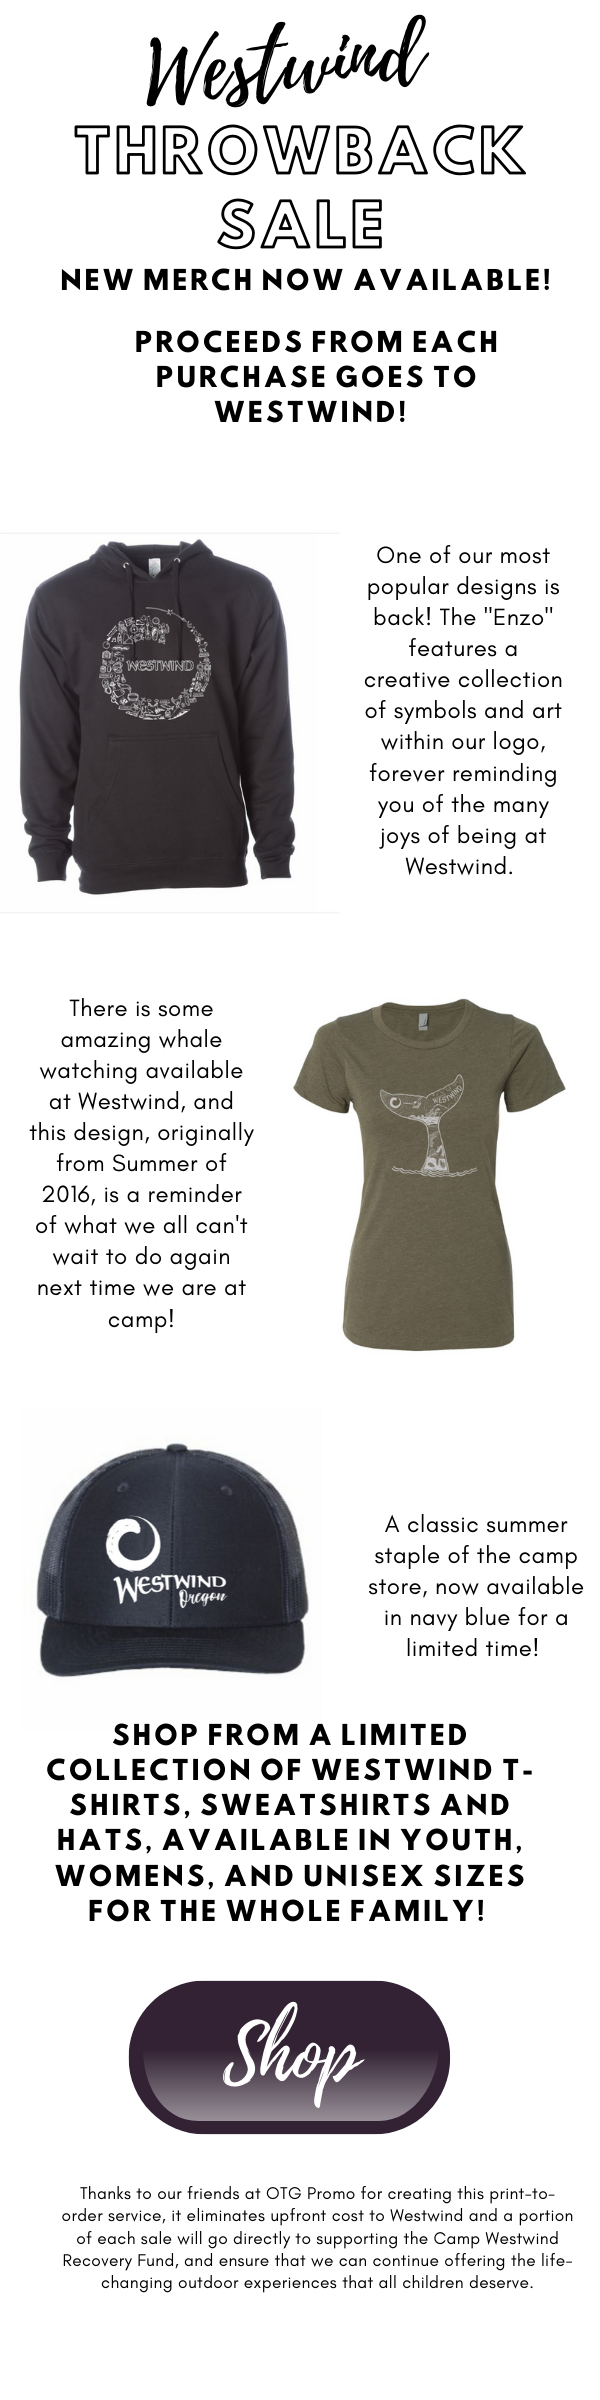 Westwind Merchandise Promo (1).png